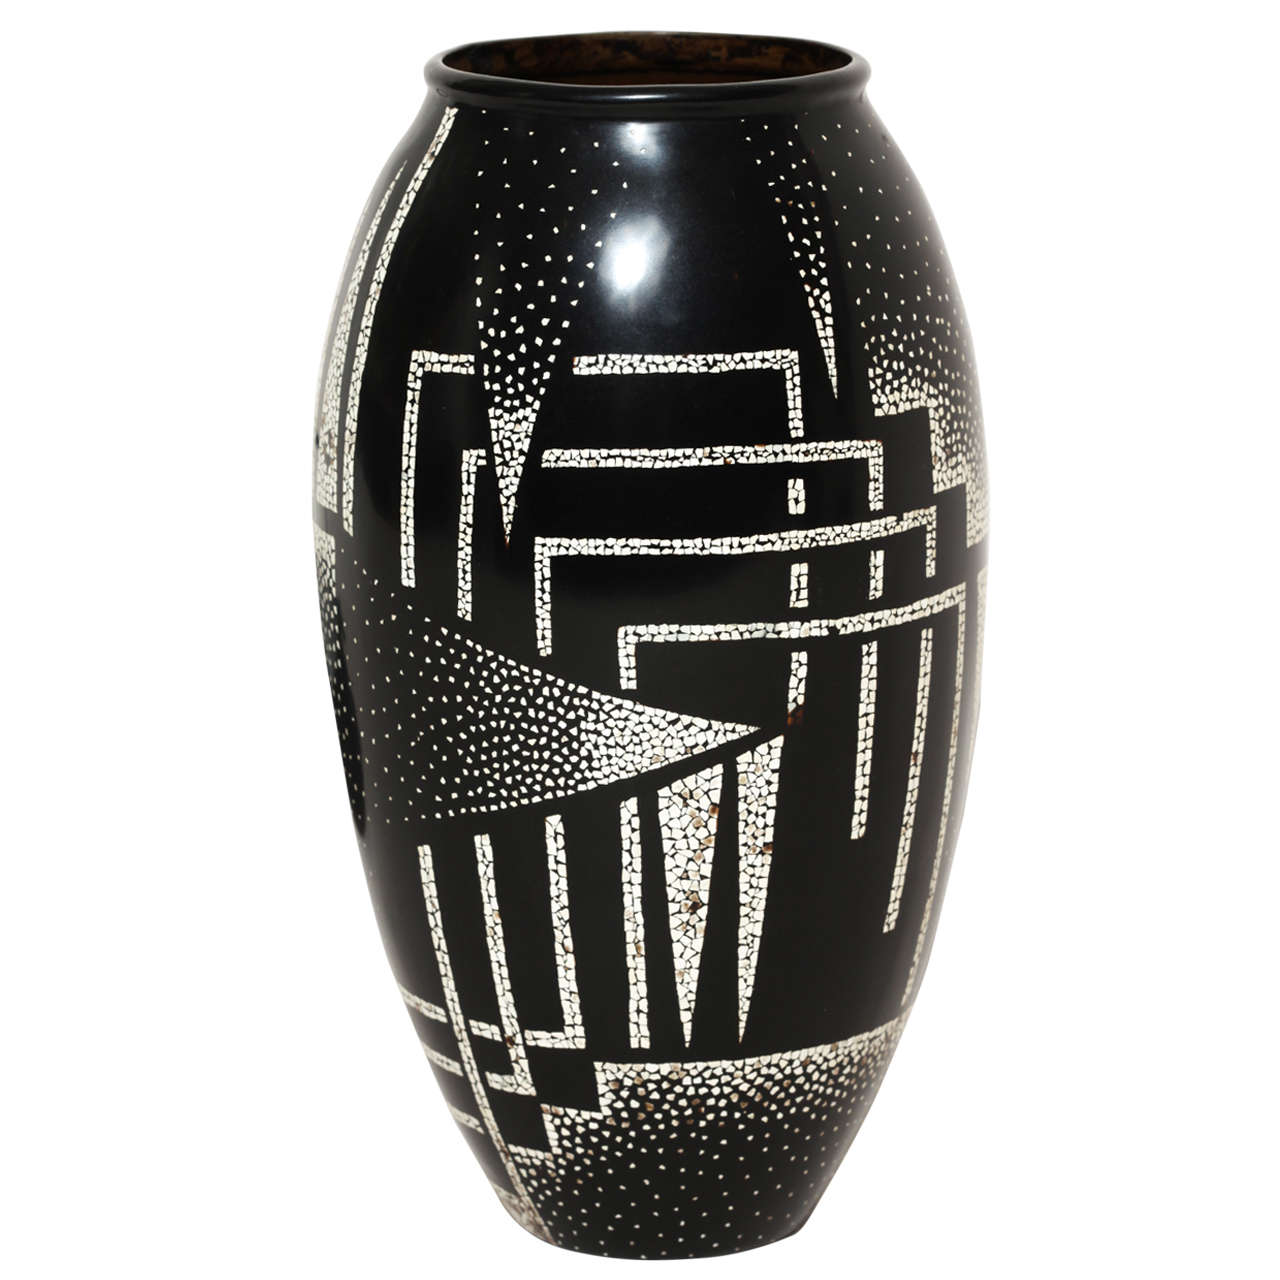 art deco ovoid lacquered vase by jean dunand at 1stdibs. Black Bedroom Furniture Sets. Home Design Ideas